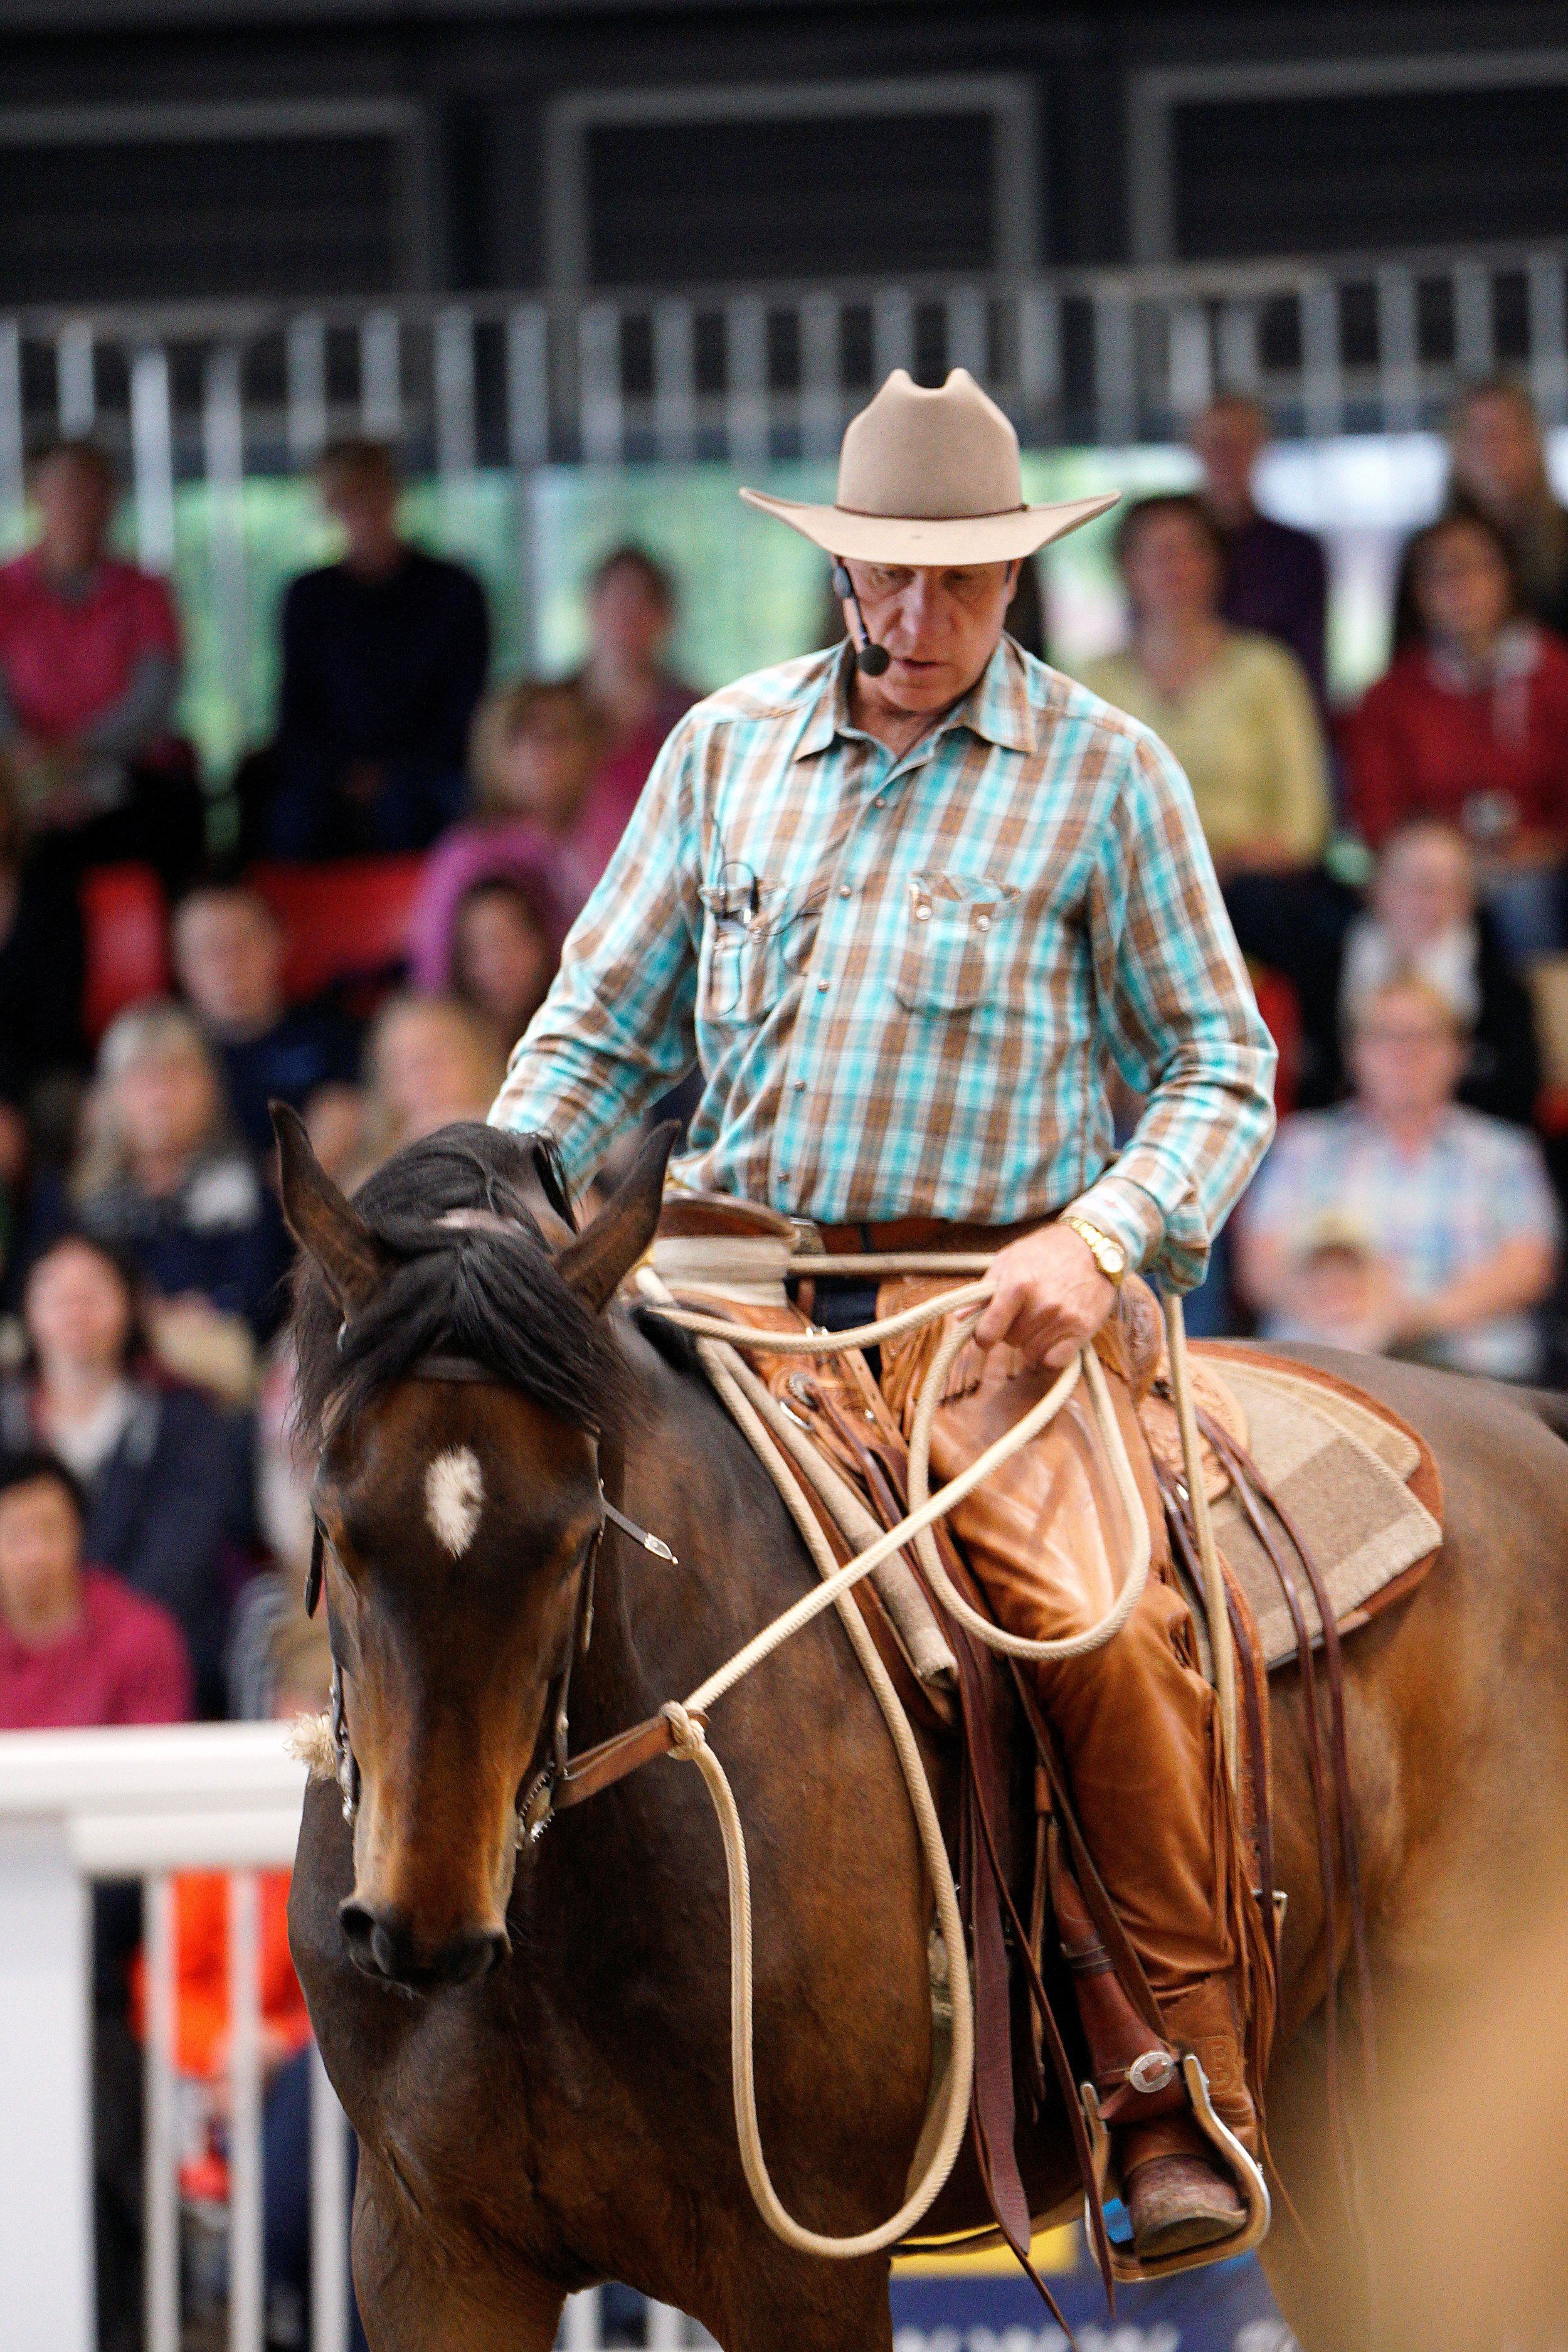 Buck is Back! - Come to Aintree International Arena from Friday 7th June to Sunday 9th June 2019 to watch one of the world's most talented horsemen conduct his third UK clinic, in conjunction with Total Horsemanship.